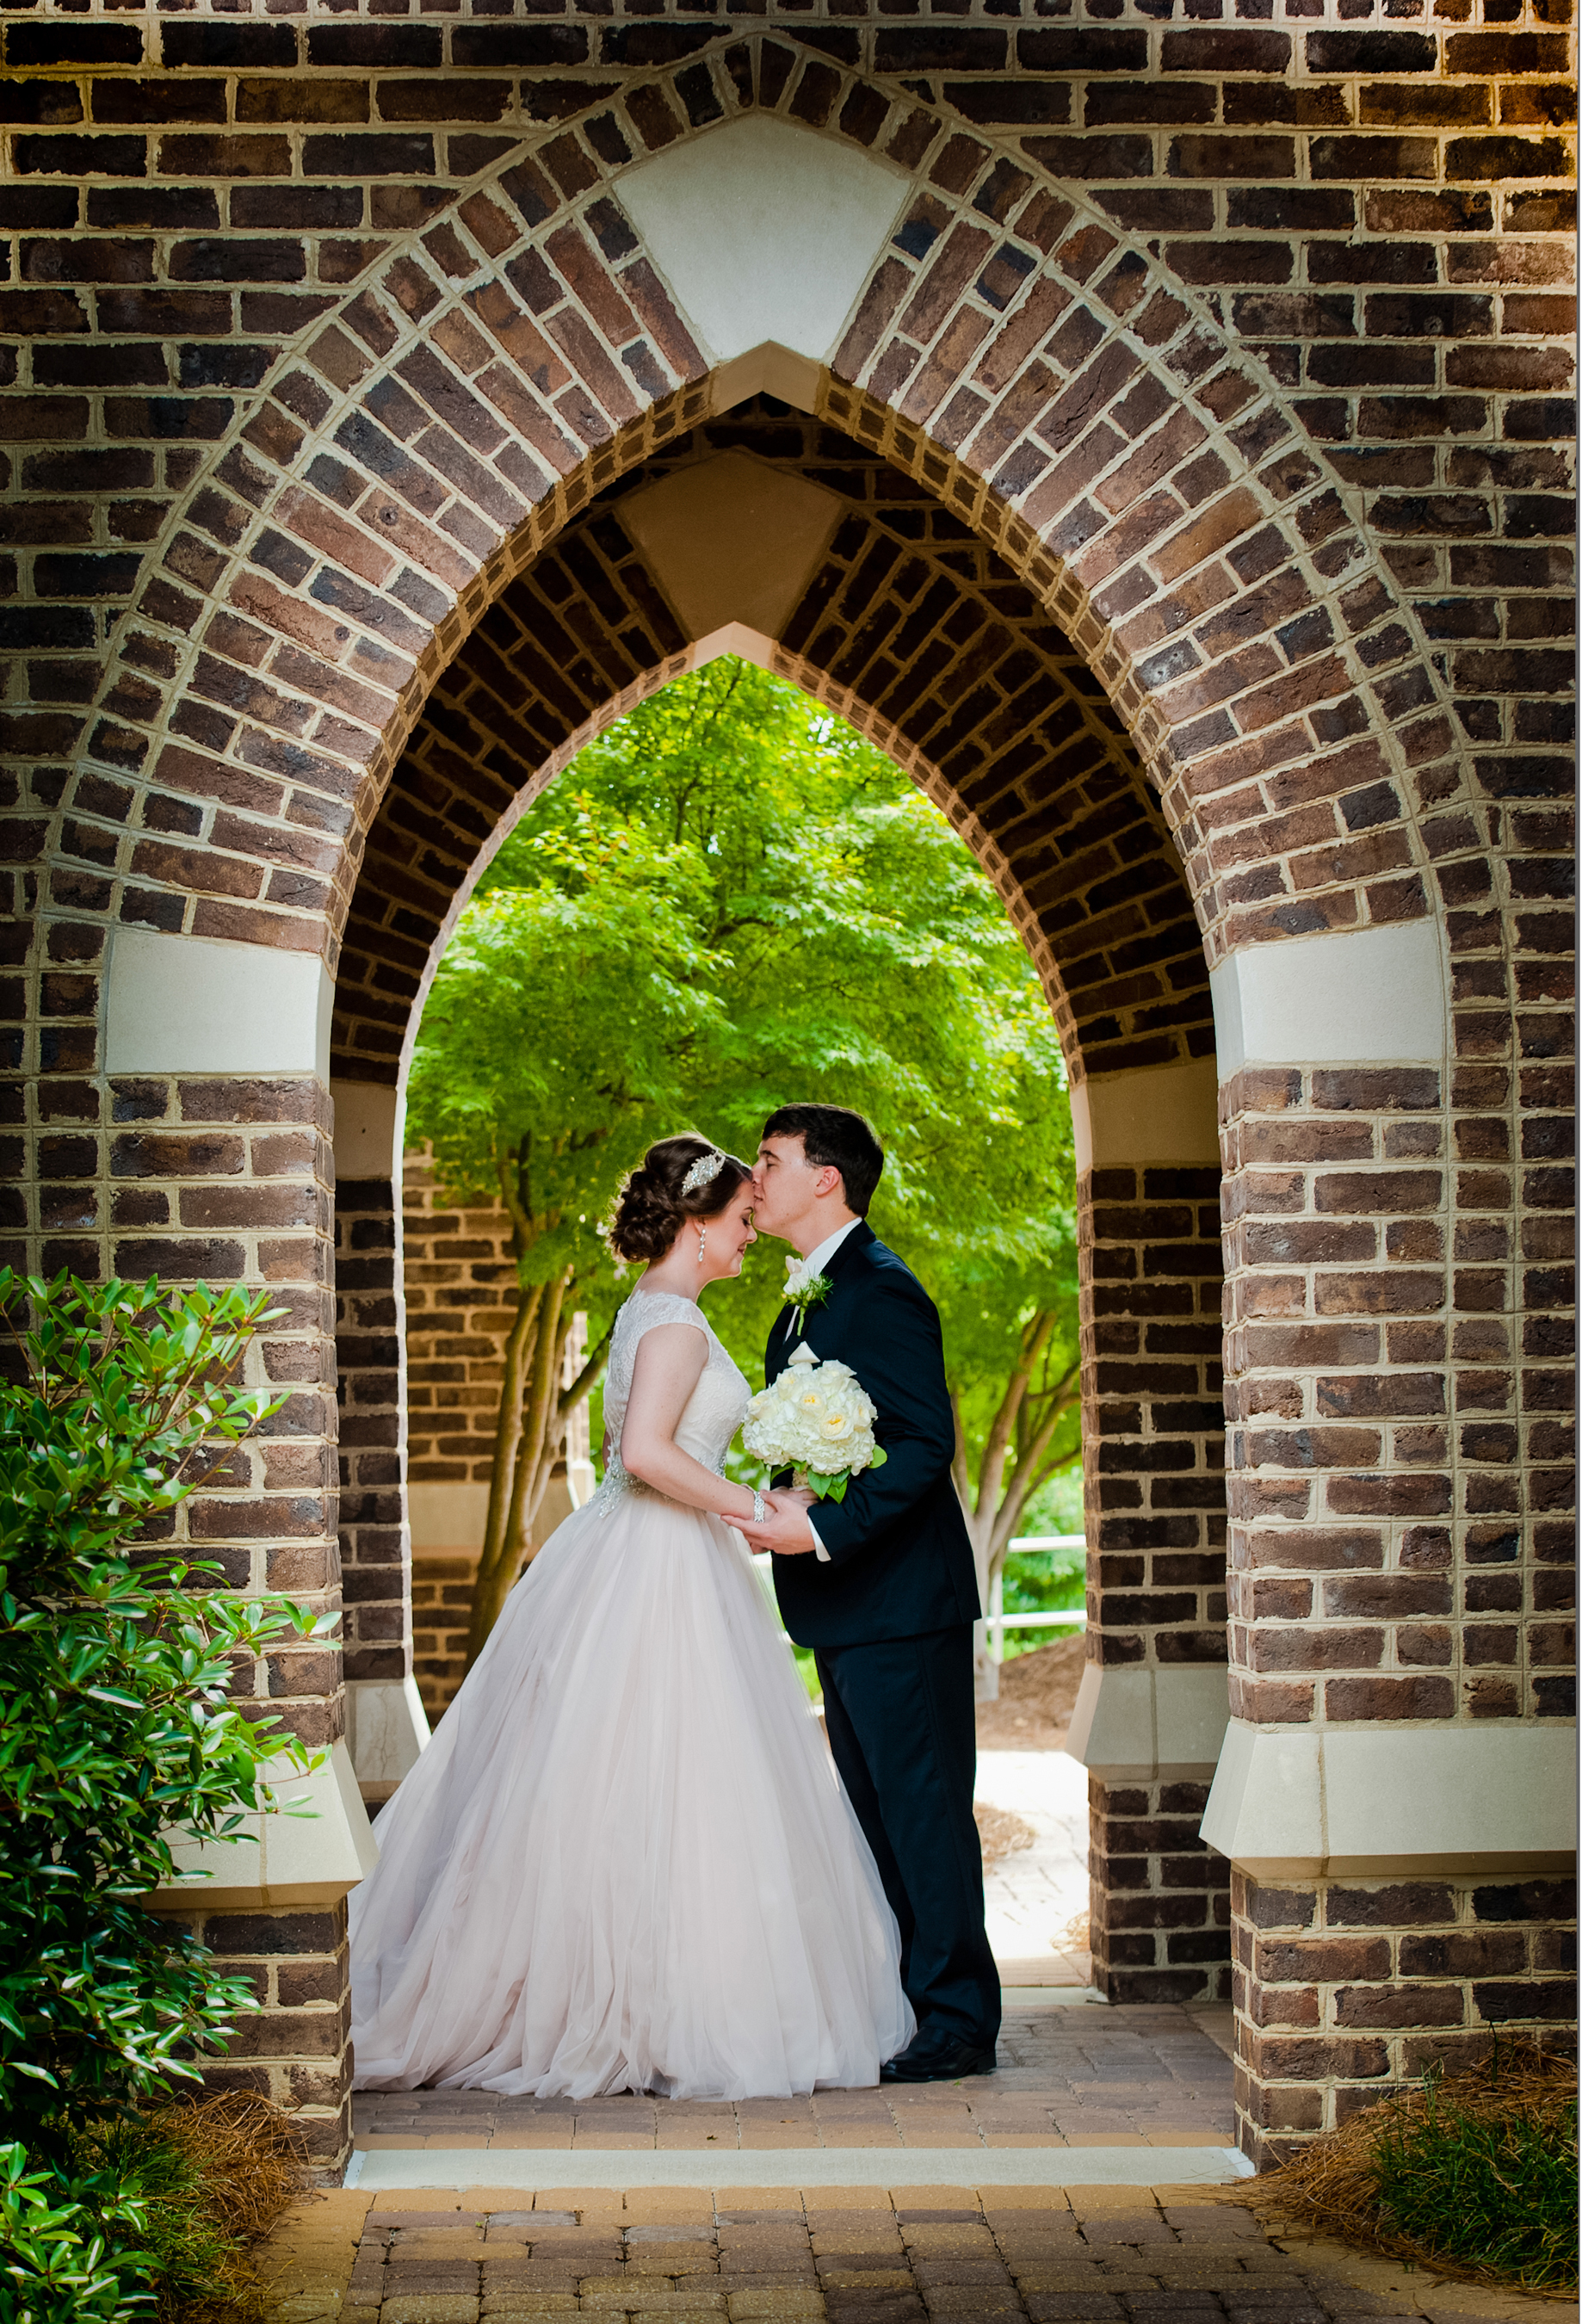 Bride and groom standing in an outdoor archway